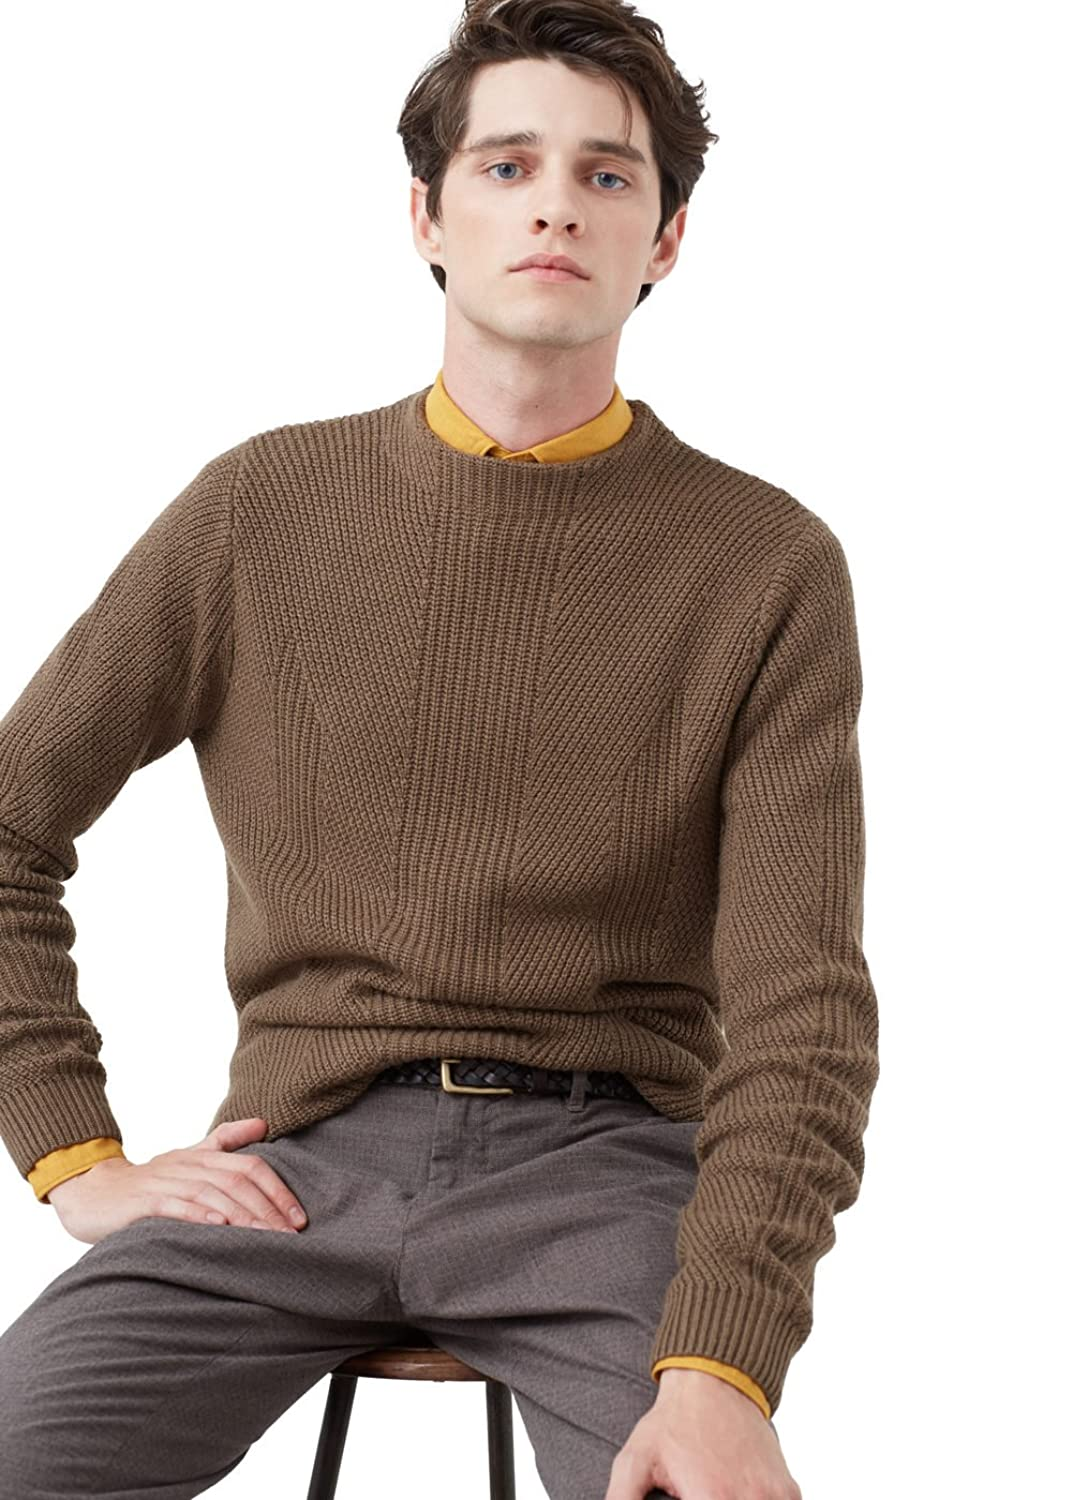 MANGO MAN - Wool-blend knit sweater - Size:S - Color:Tobacco Brown